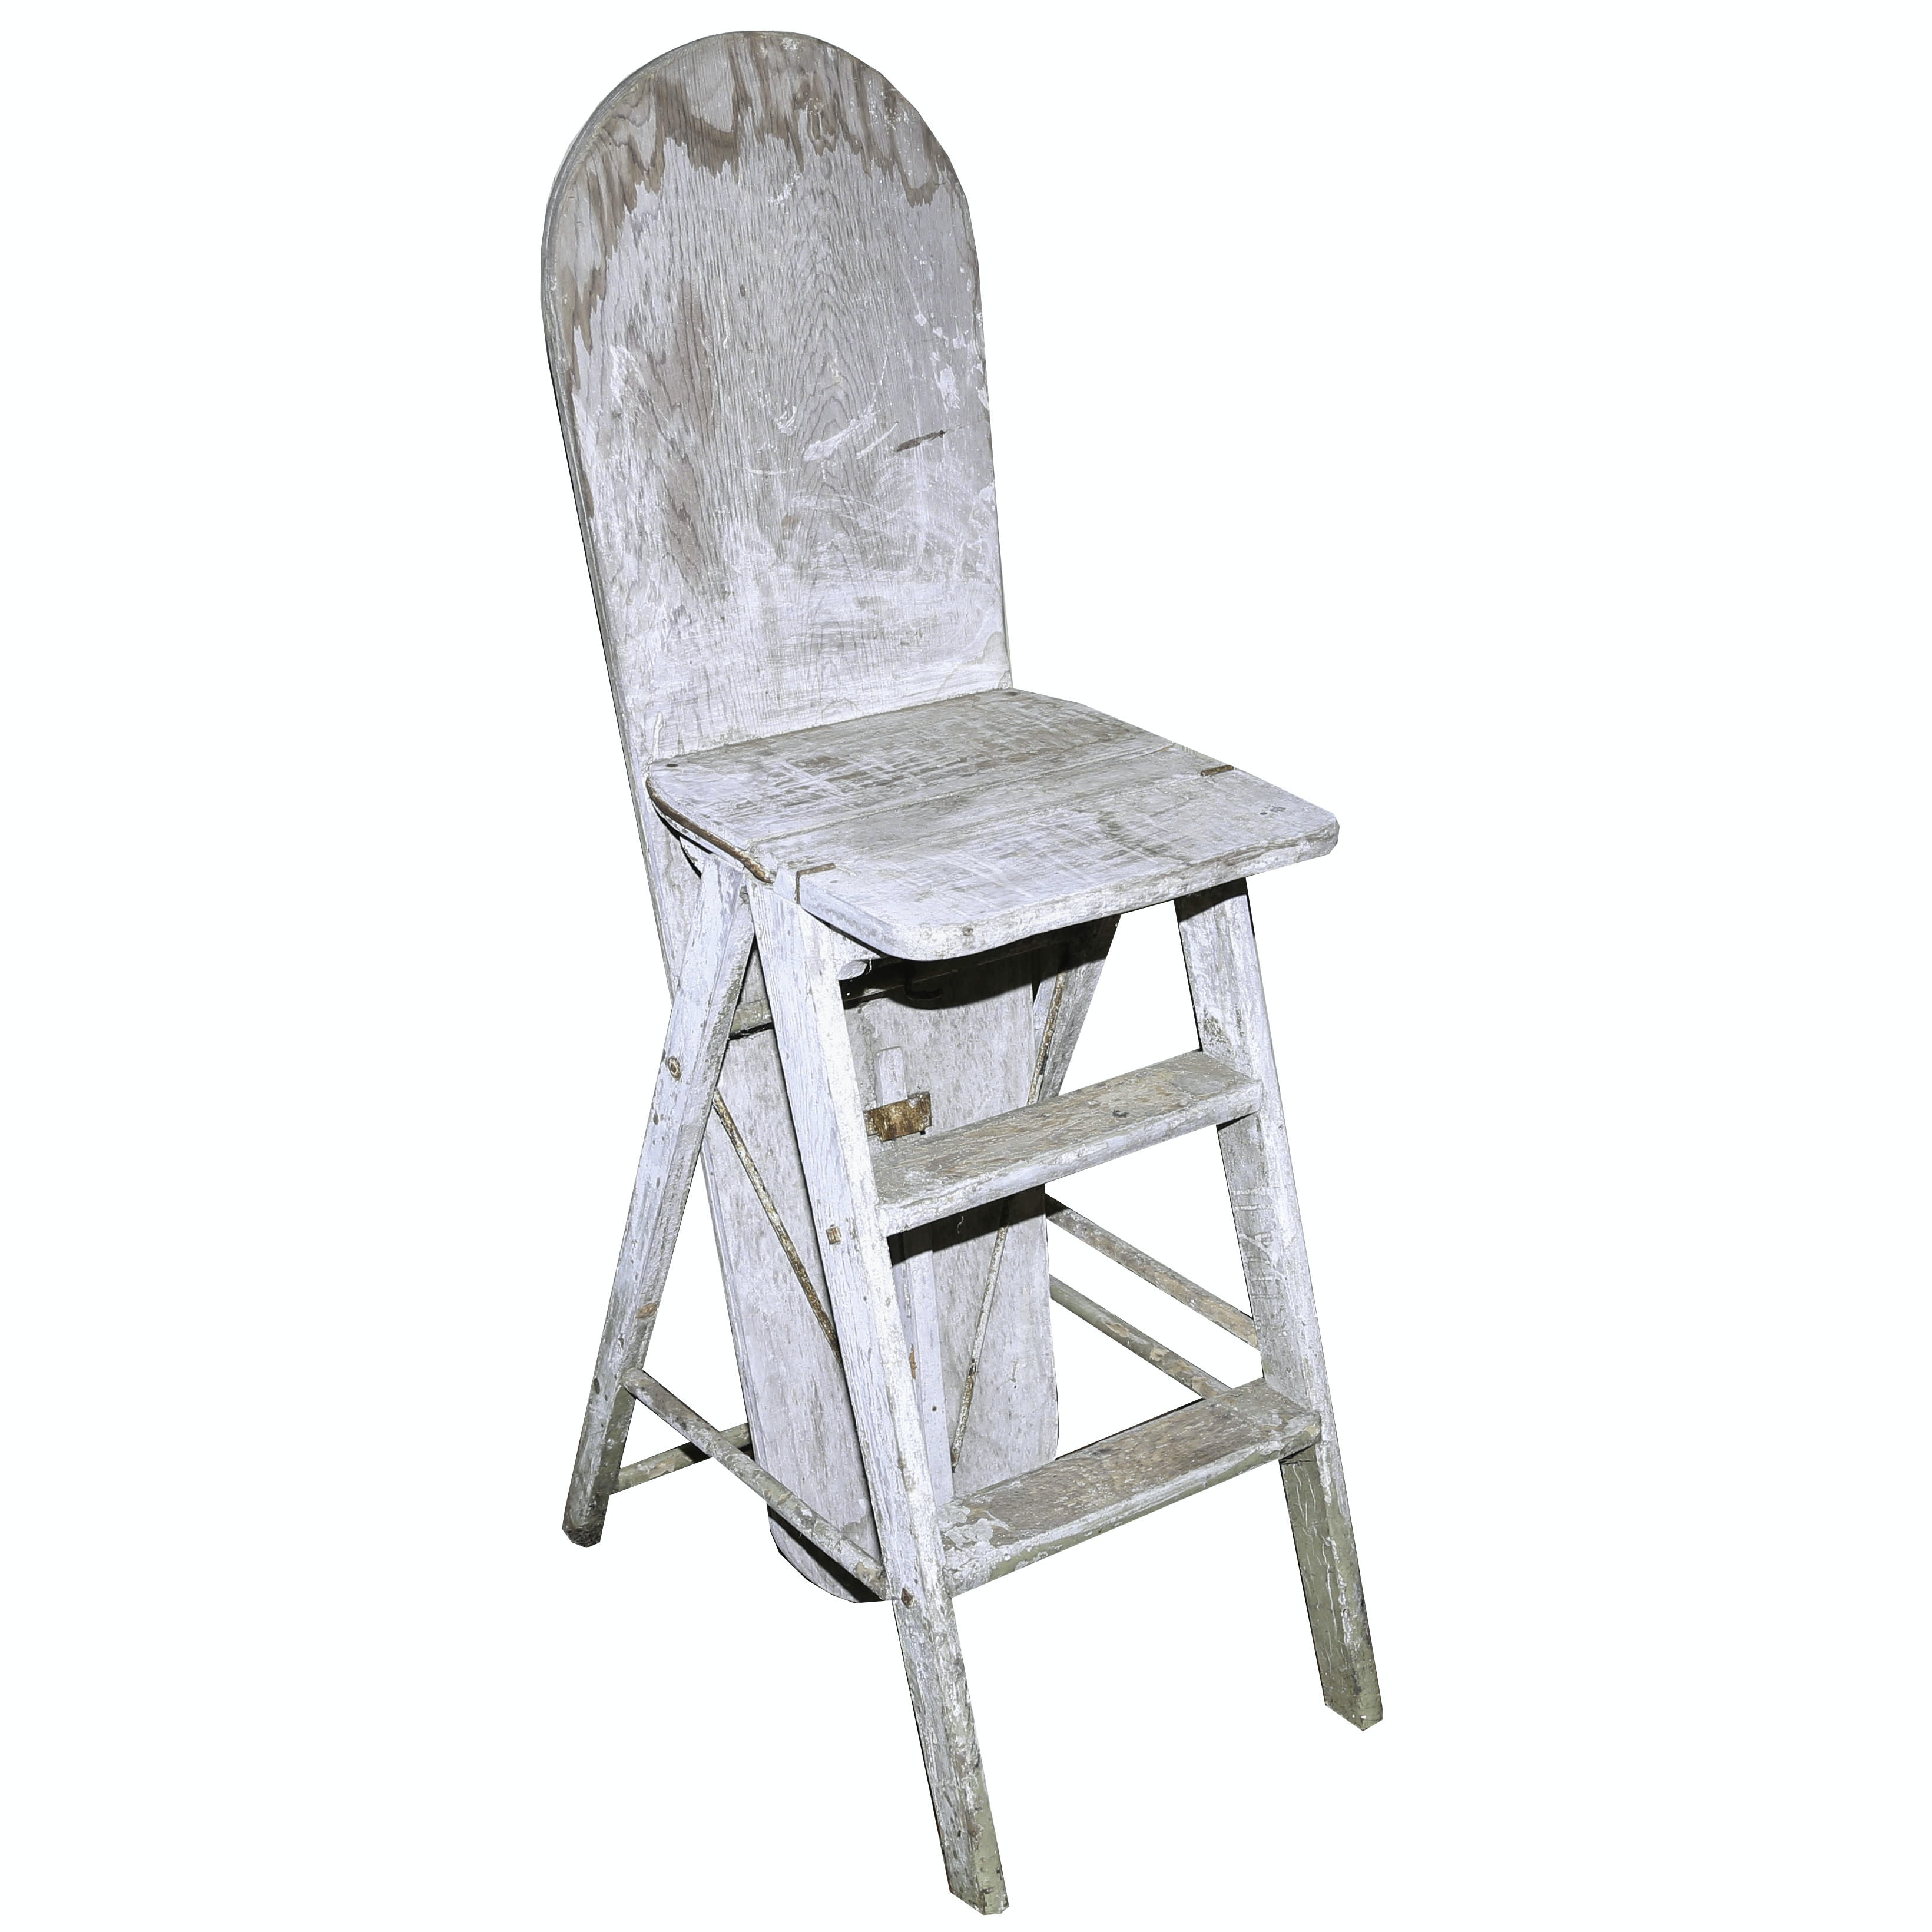 Antique Ironing Board Chair Antique Furniture